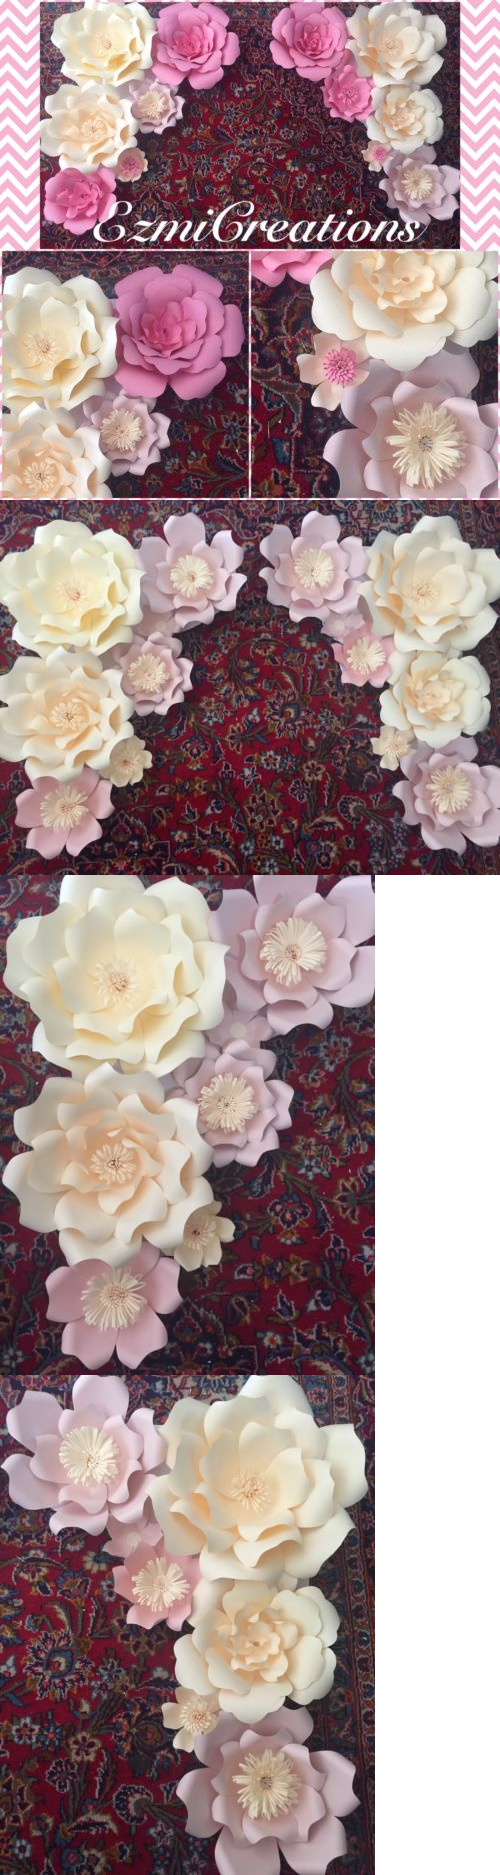 Flower embellishments 160734 paper flowers diy kit buy it now flower embellishments 160734 paper flowers diy kit buy it now only 60 mightylinksfo Choice Image